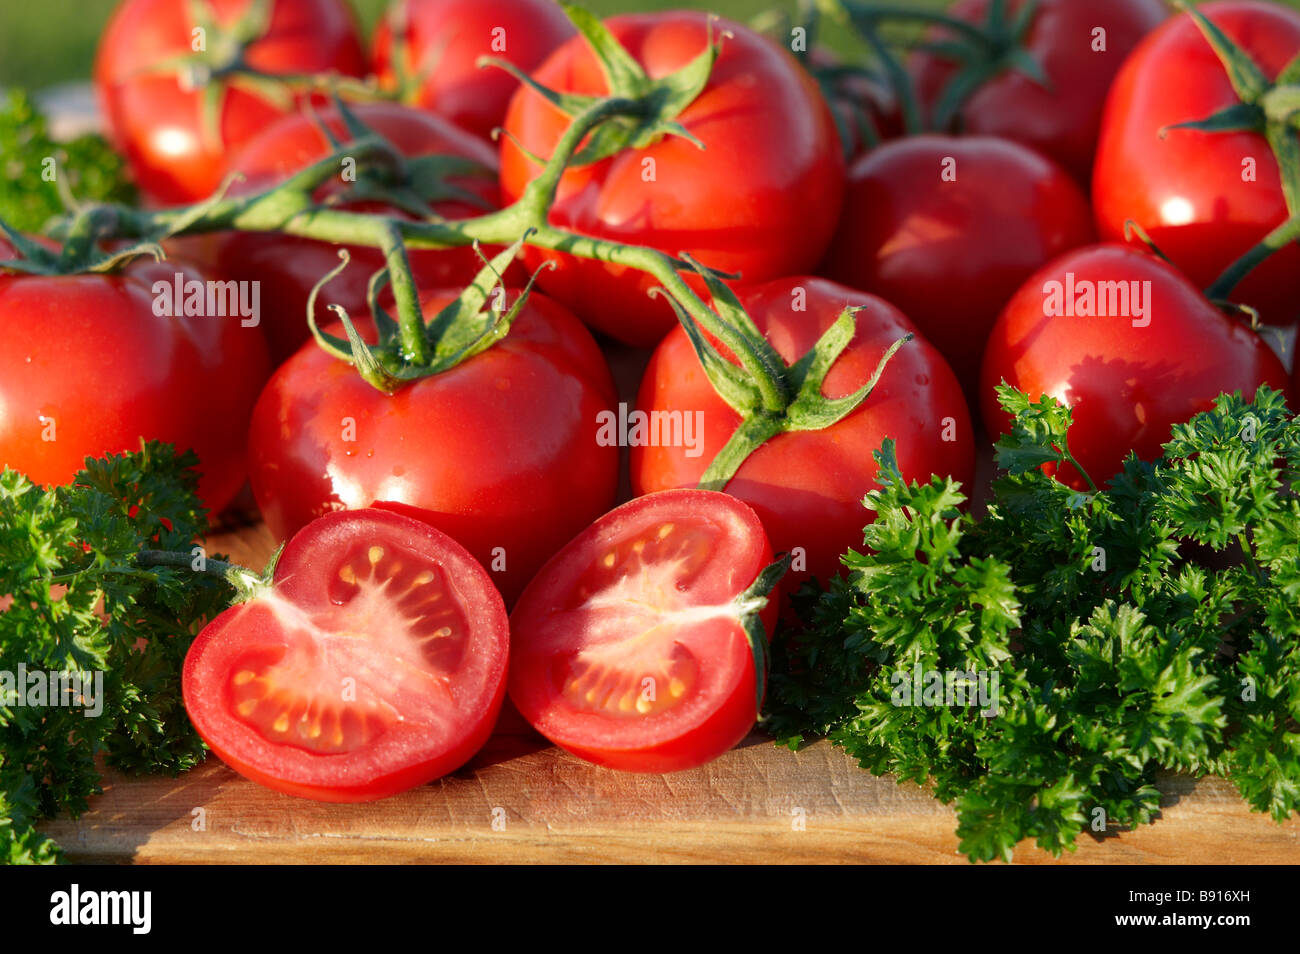 Home grown ripe organic tomatoes - Stock Image